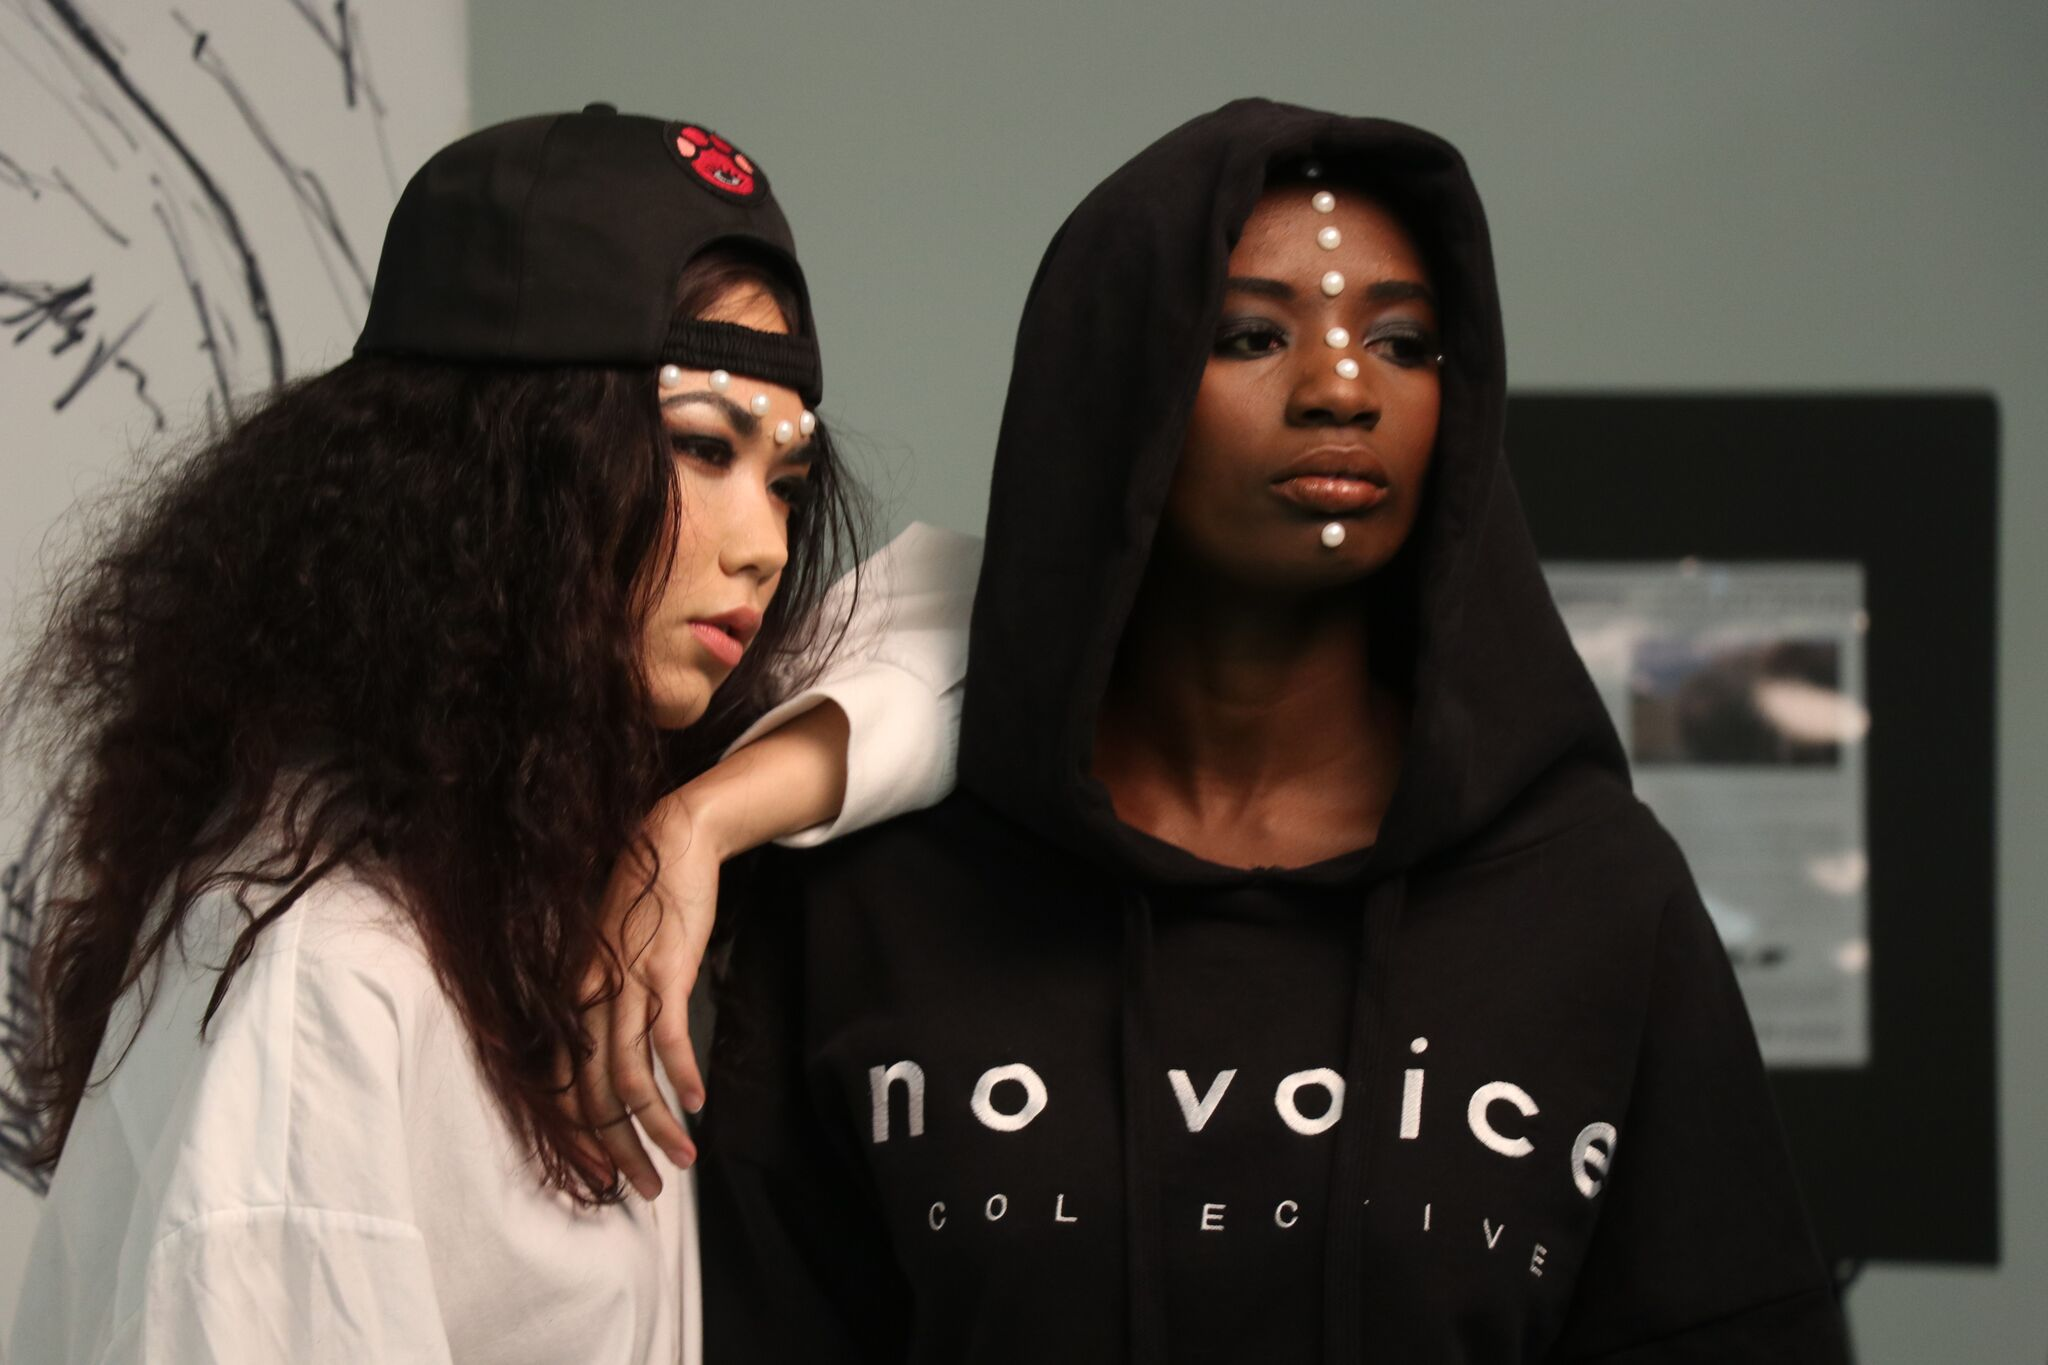 Americas Next Top Model and Elephantasia SS17 cover girl Binta Dibba (right) posing with Amy Gee (left)